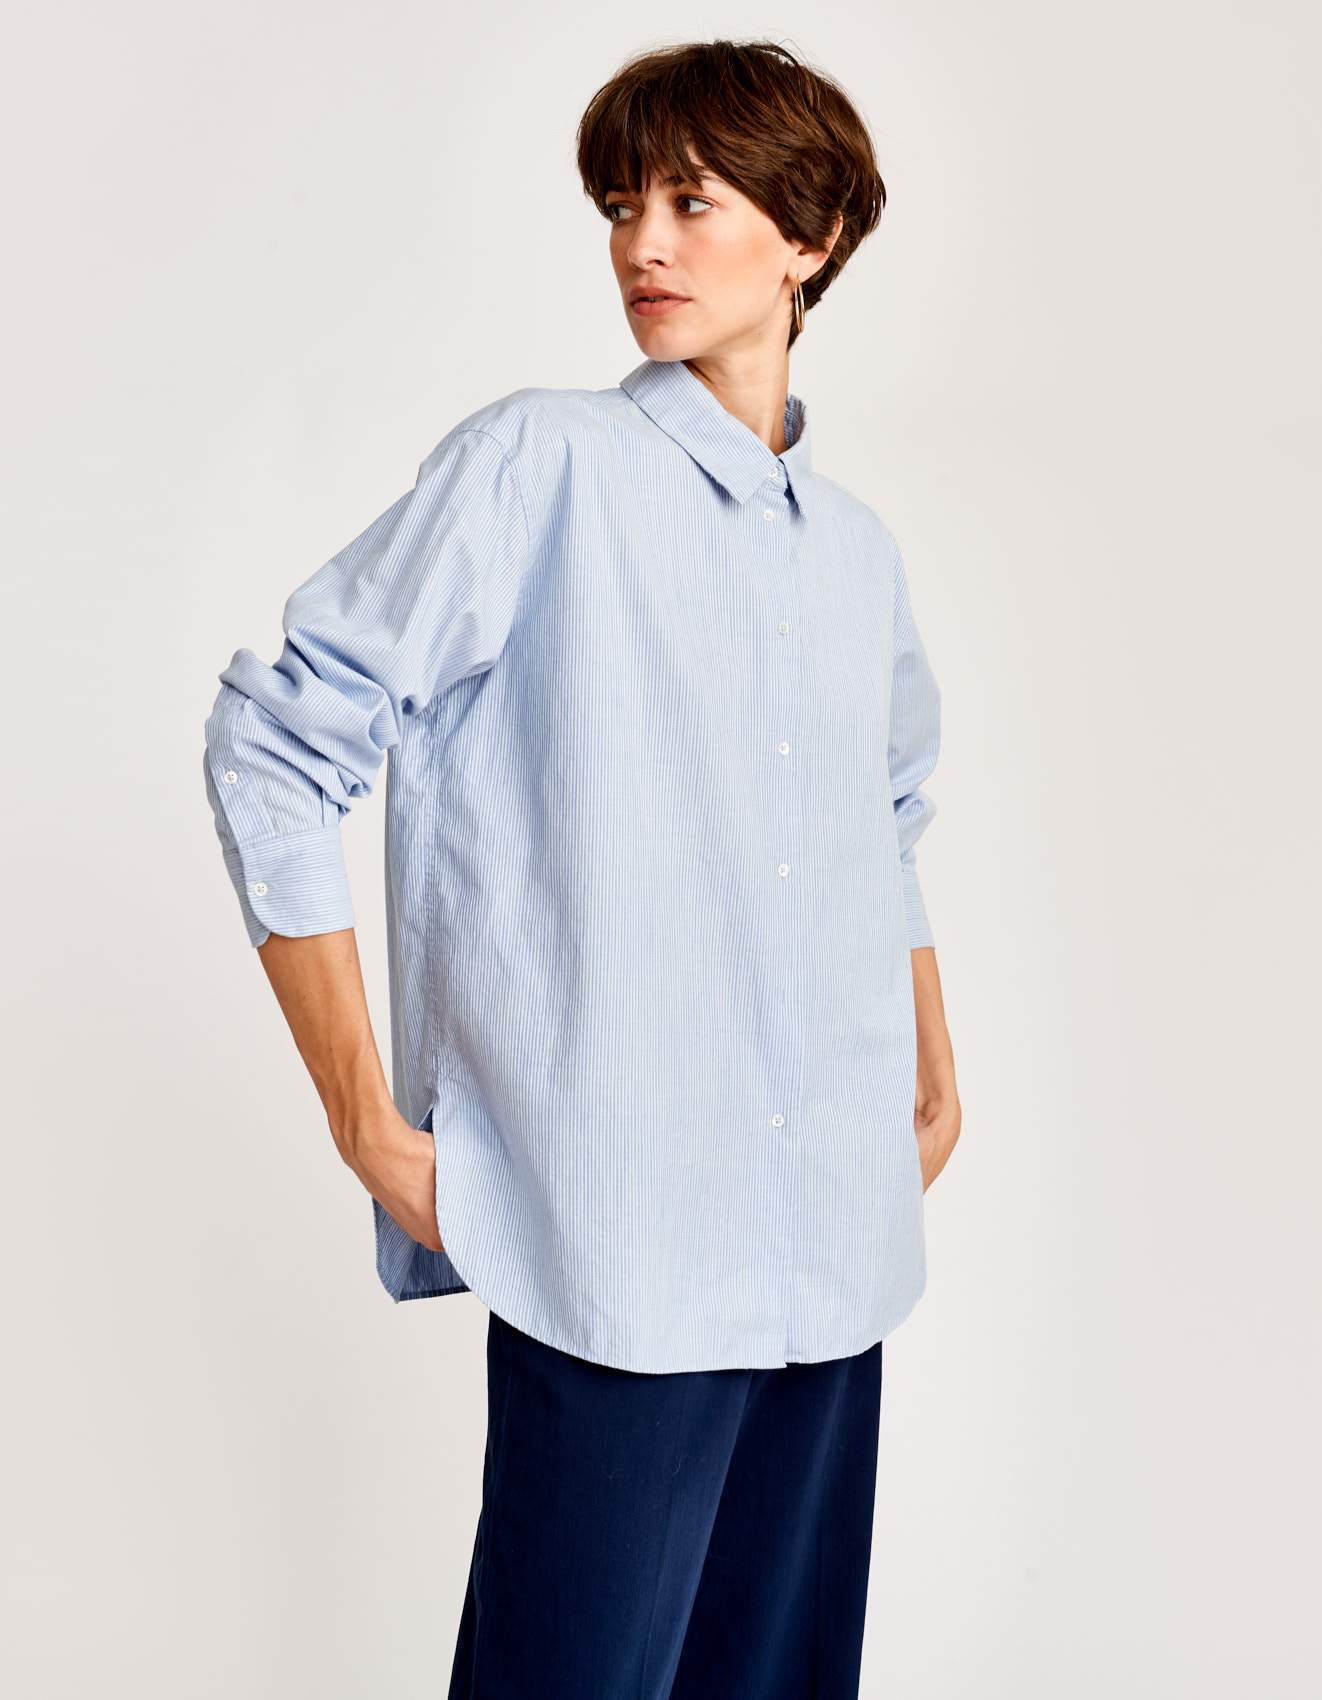 Bellerose oversized striped cotton shirt for women